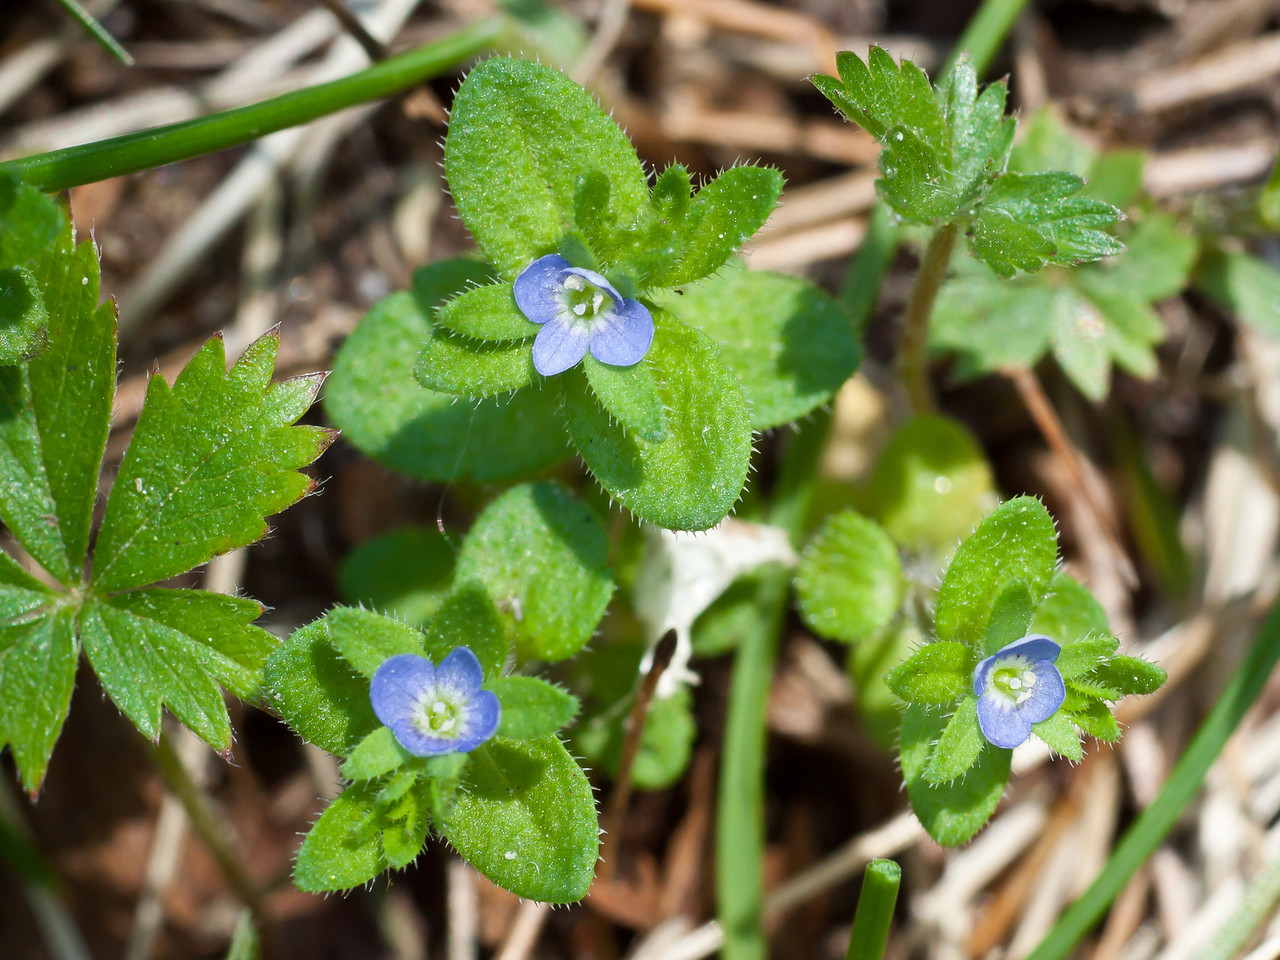 Corn speedwell - under the lawnmower blade